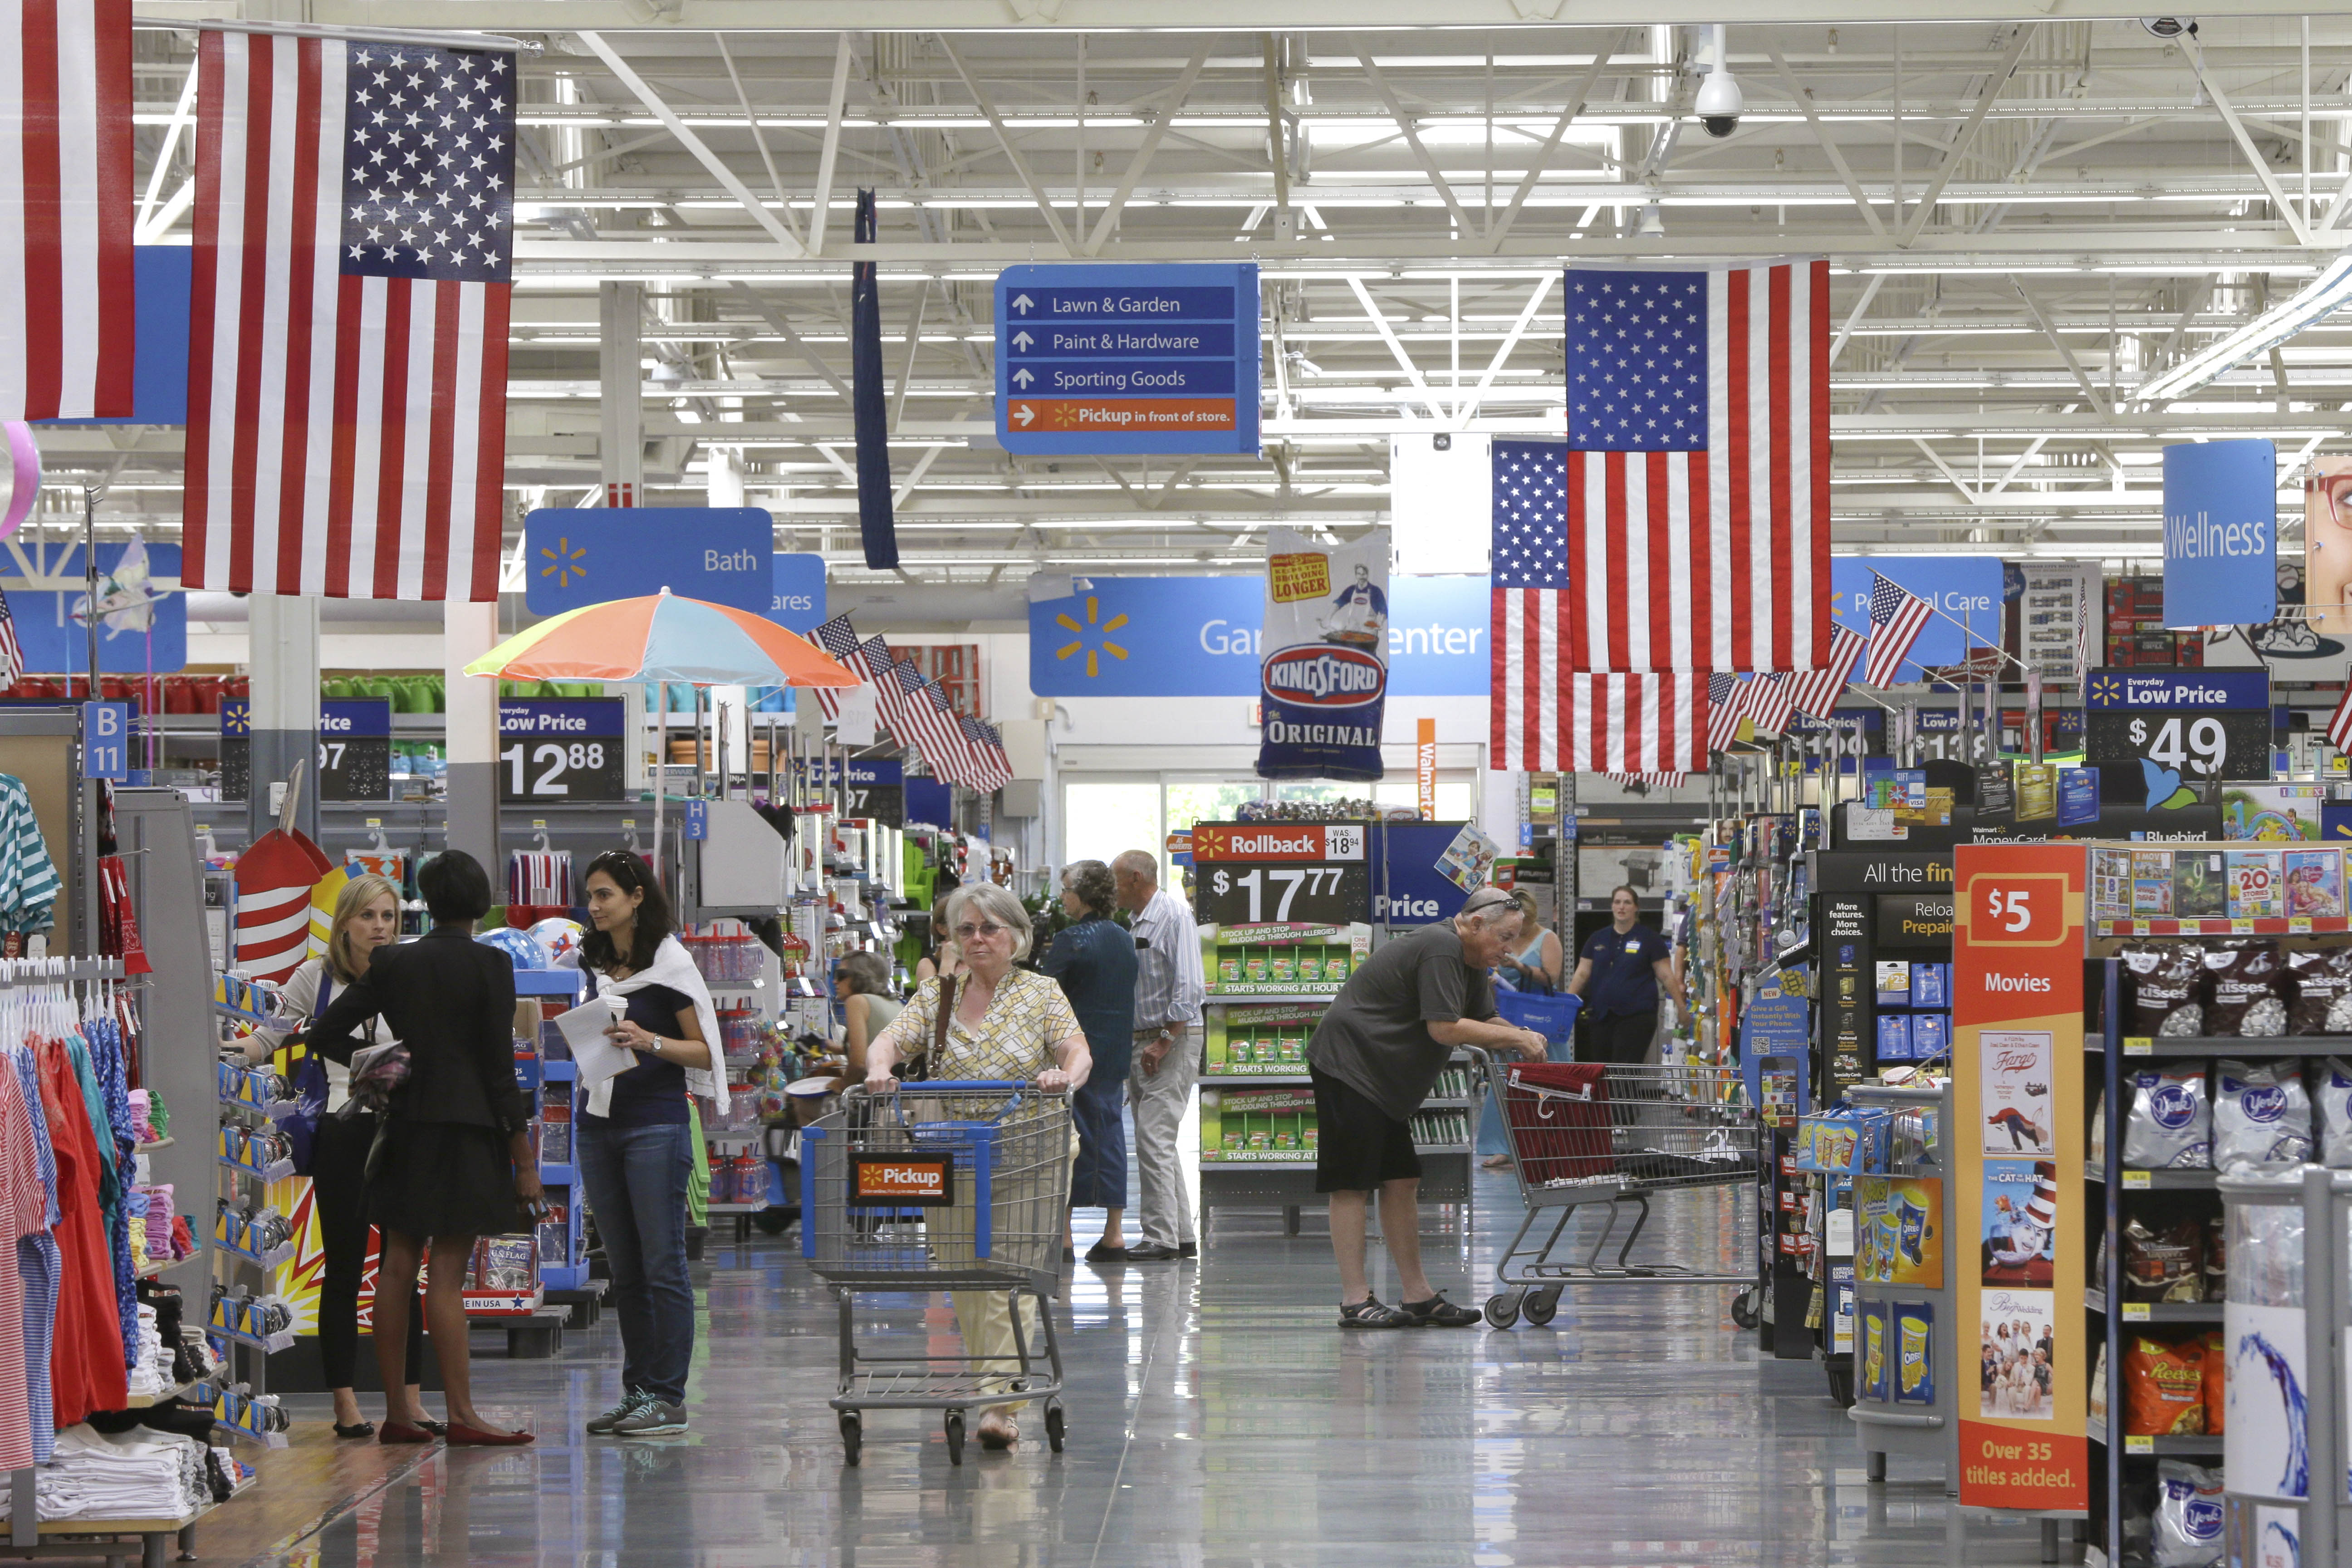 Customers shop on widened aisles at a Wal-Mart Supercenter store in Springdale, Arkansas on June 4, 2015.